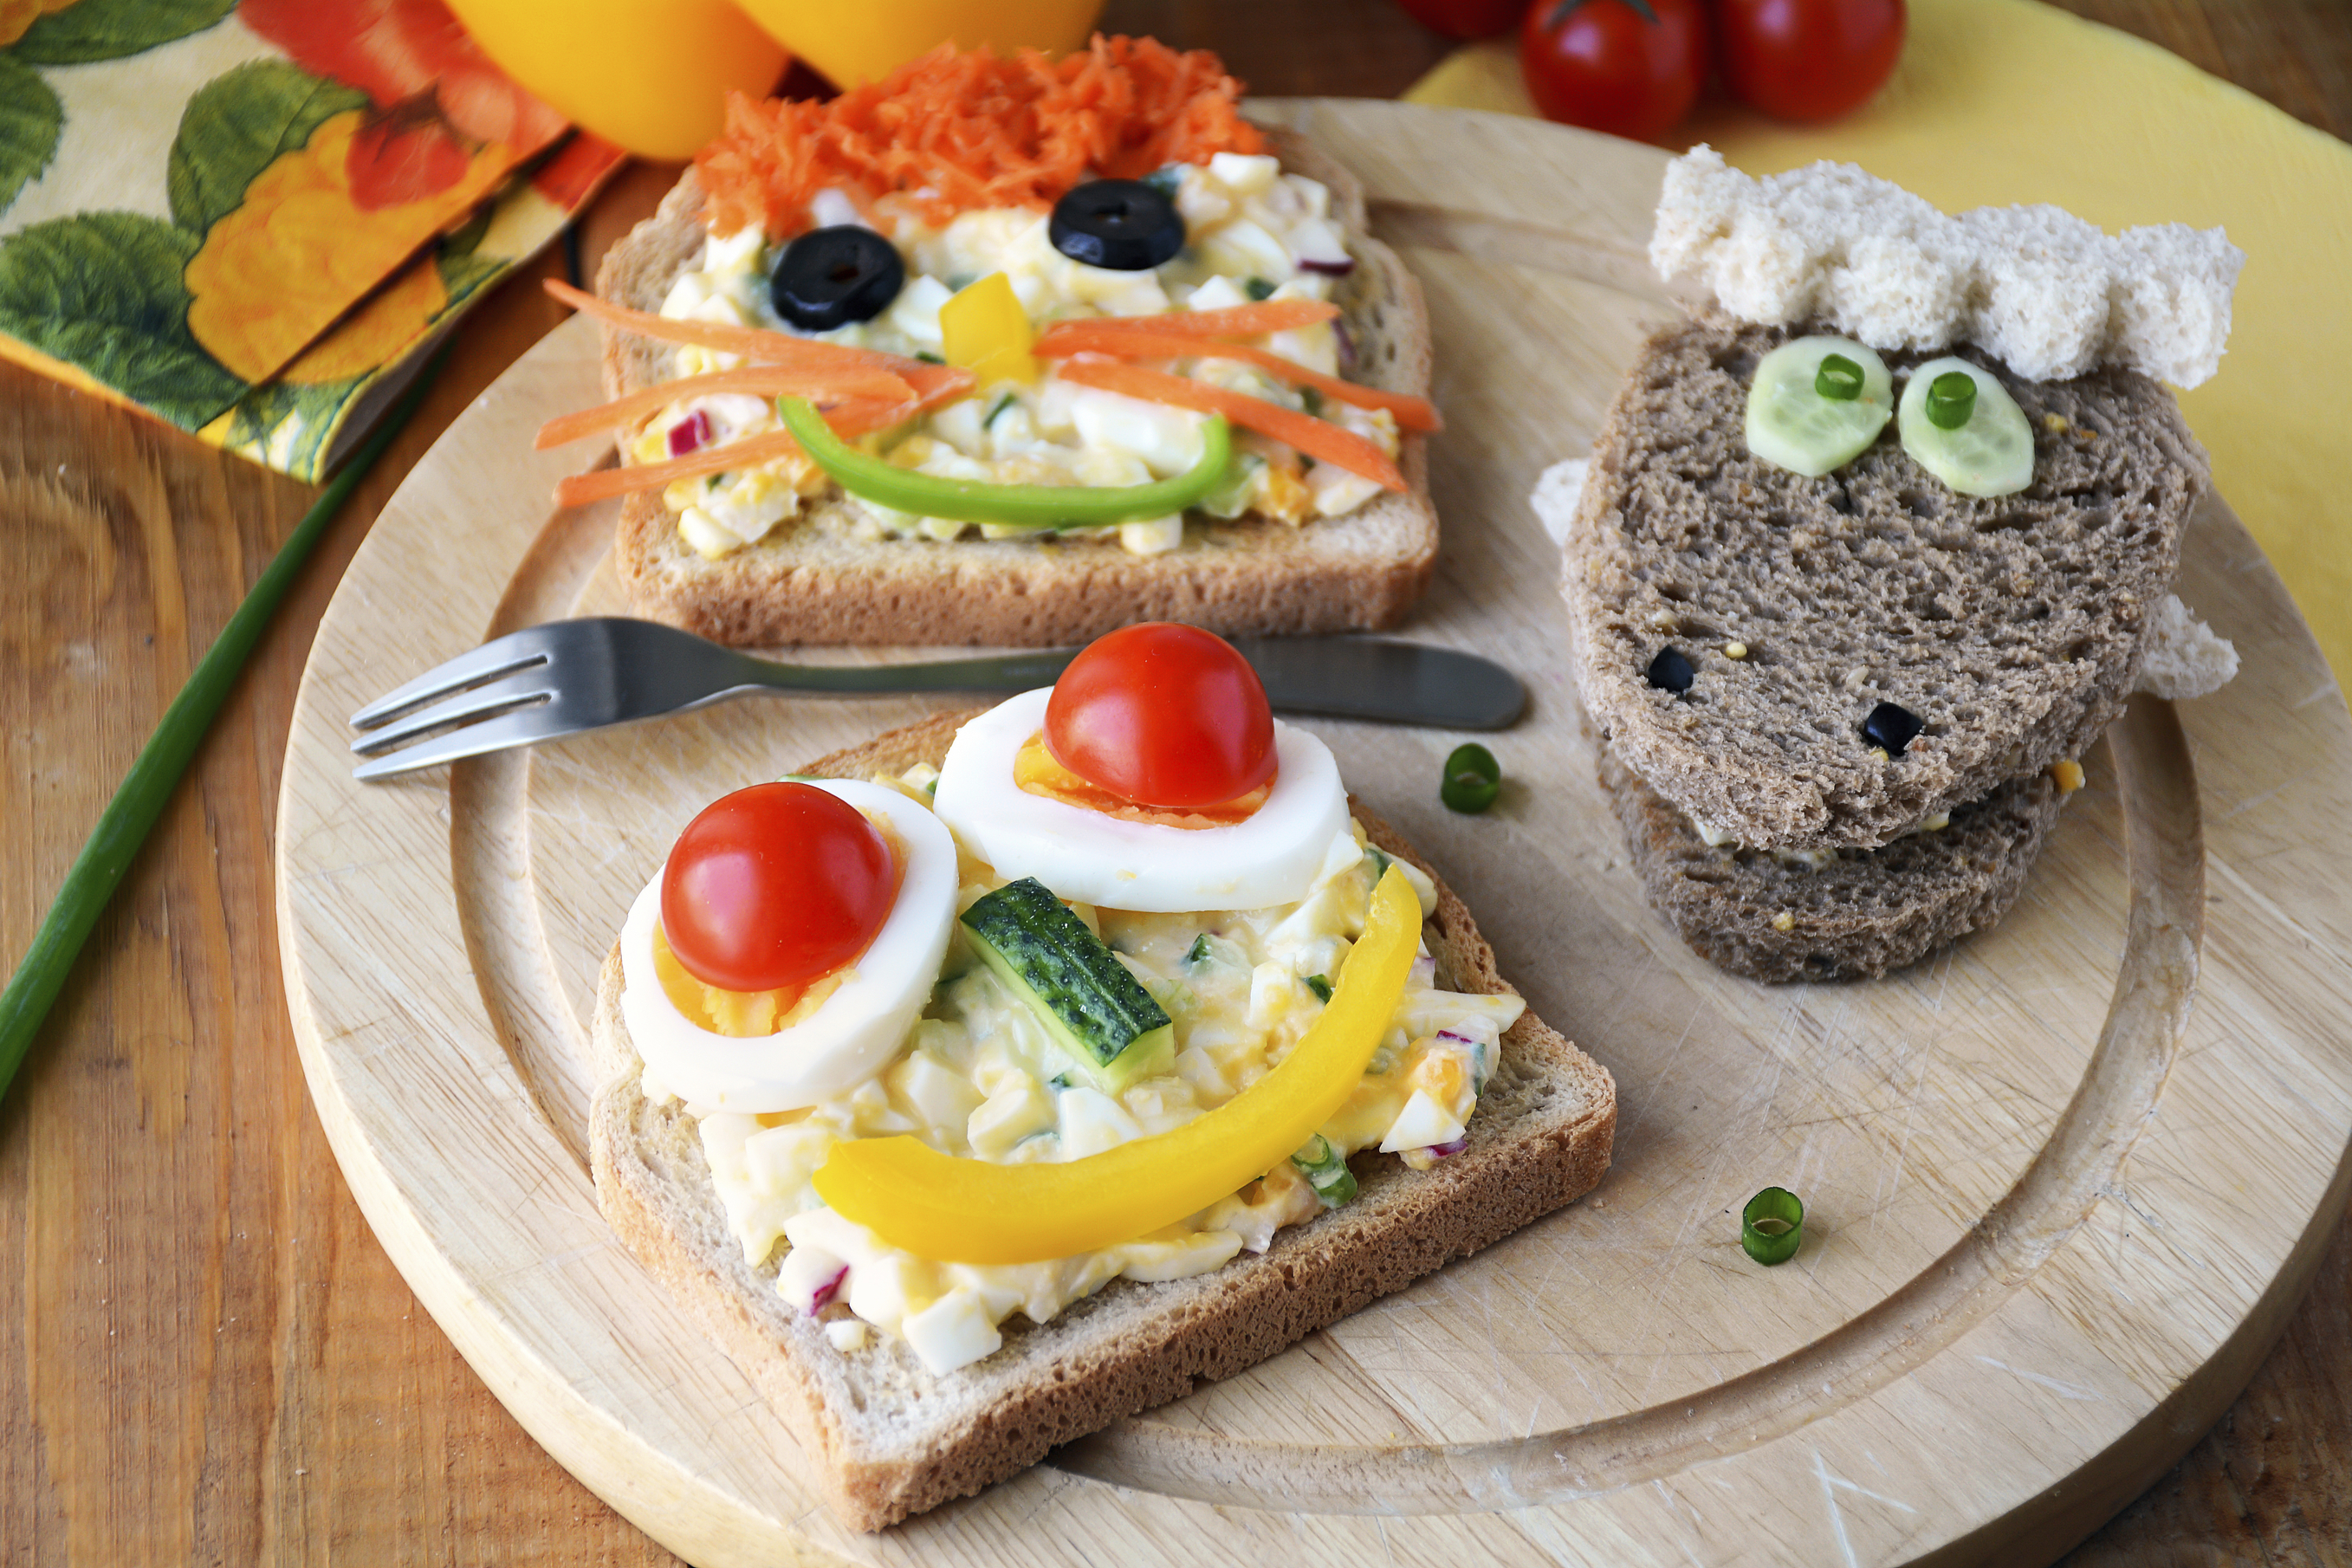 Funny sandwiches with faces for kids.